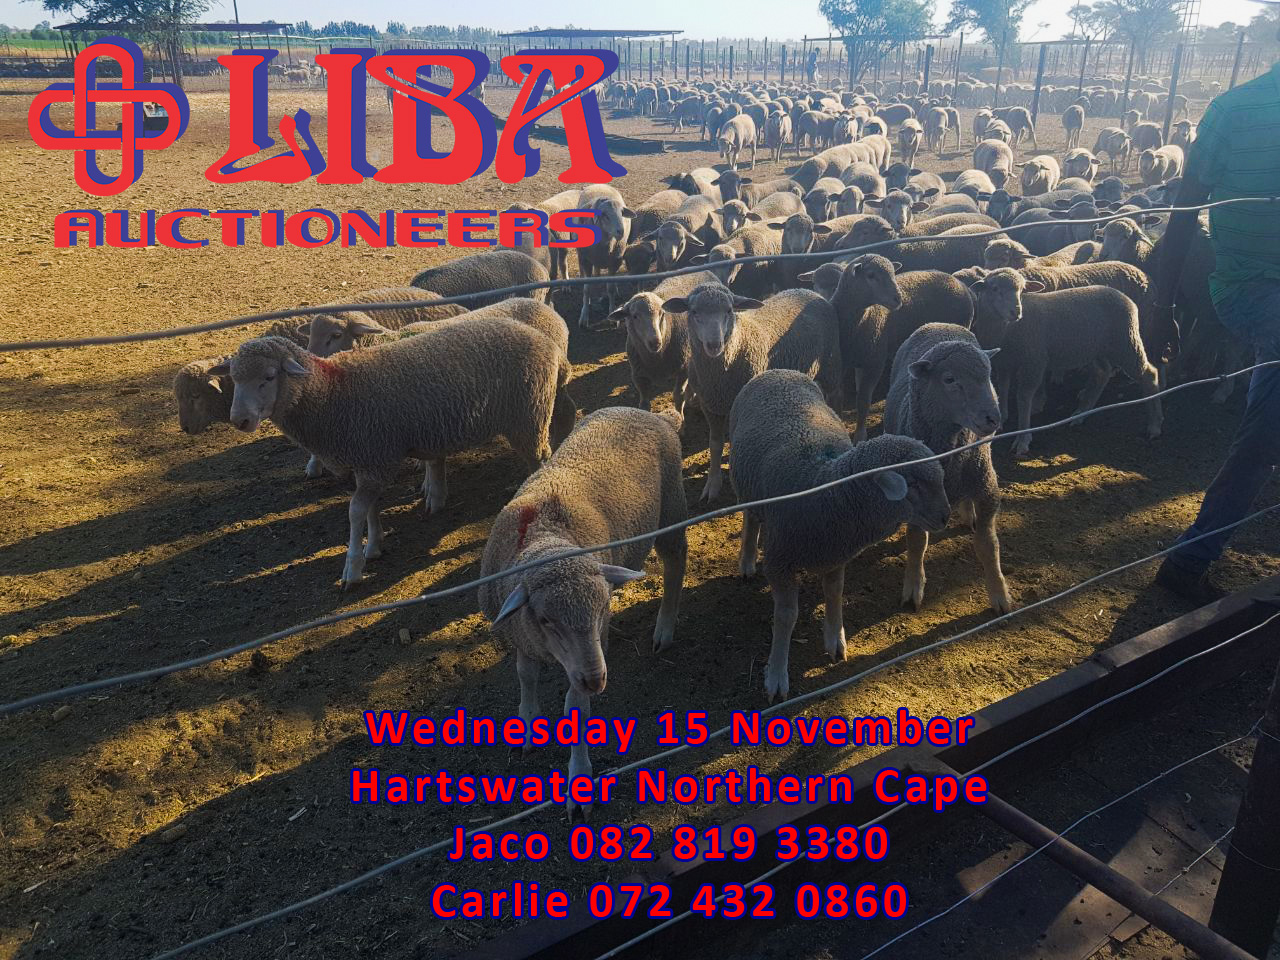 Livestock auction 15 November at Liba Auctioneers in Hartswater